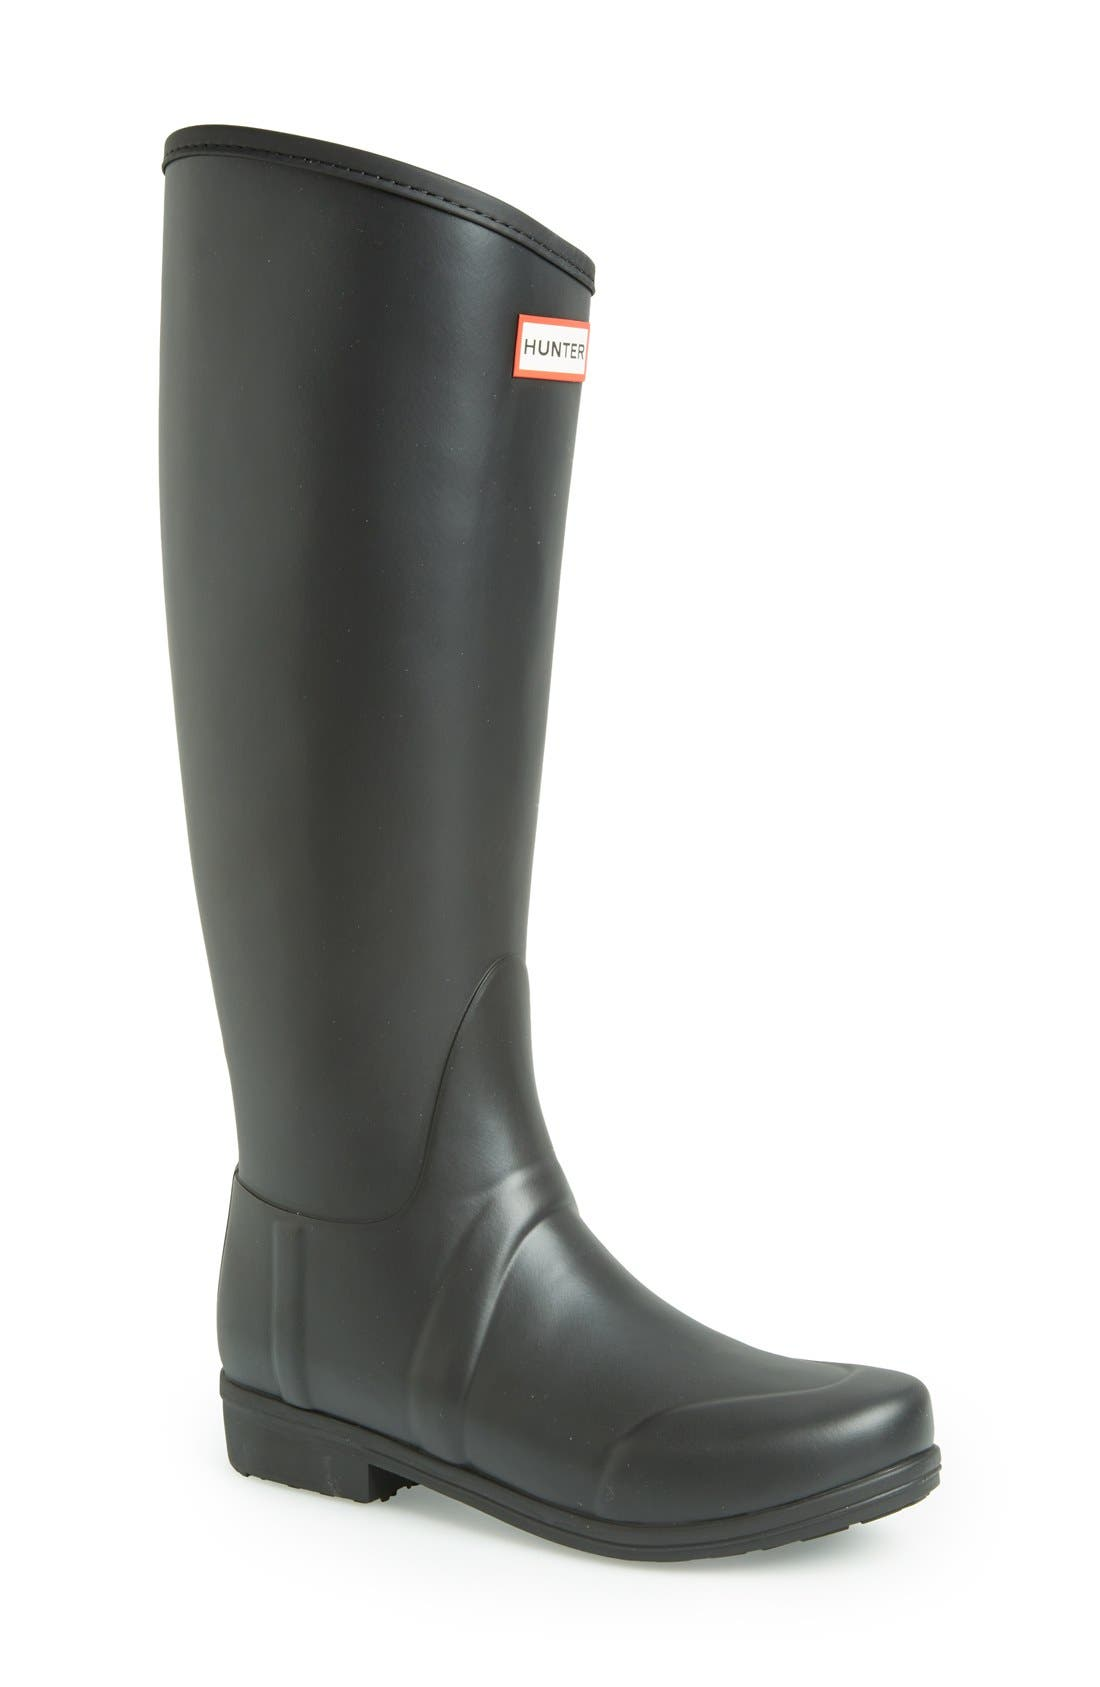 Main Image - Hunter 'Sandhurst' Tall Rain Boot (Women)